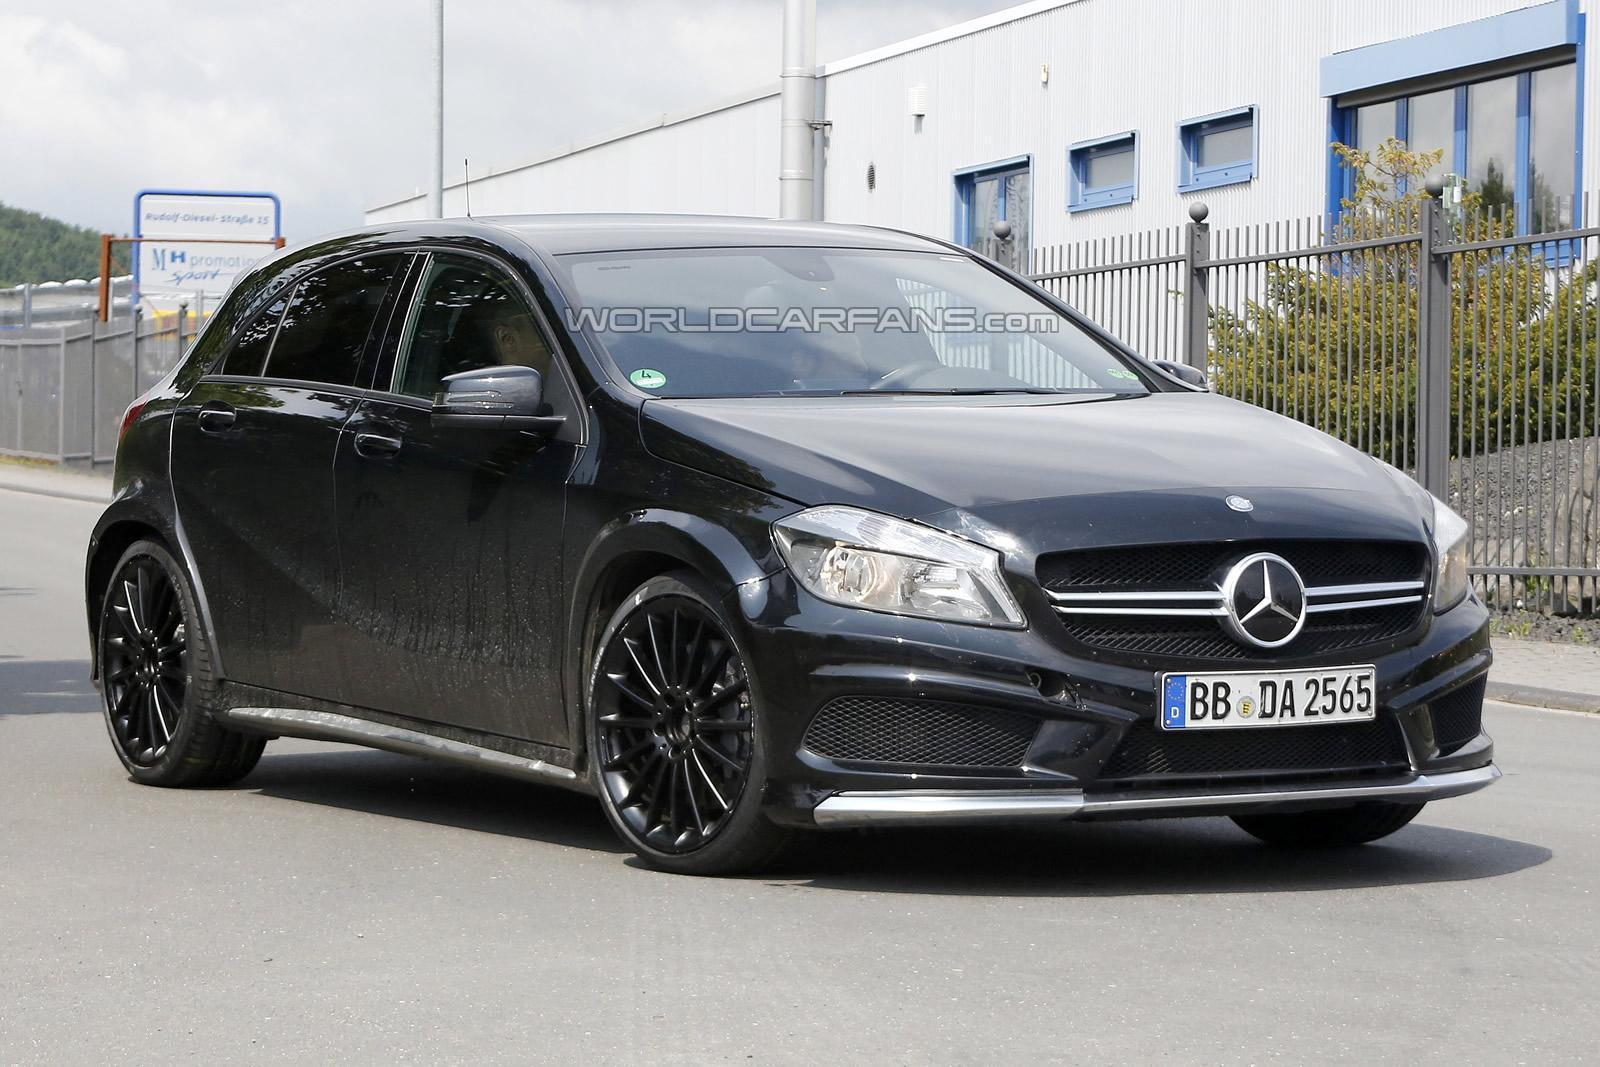 Mercedes A45 AMG Black Series